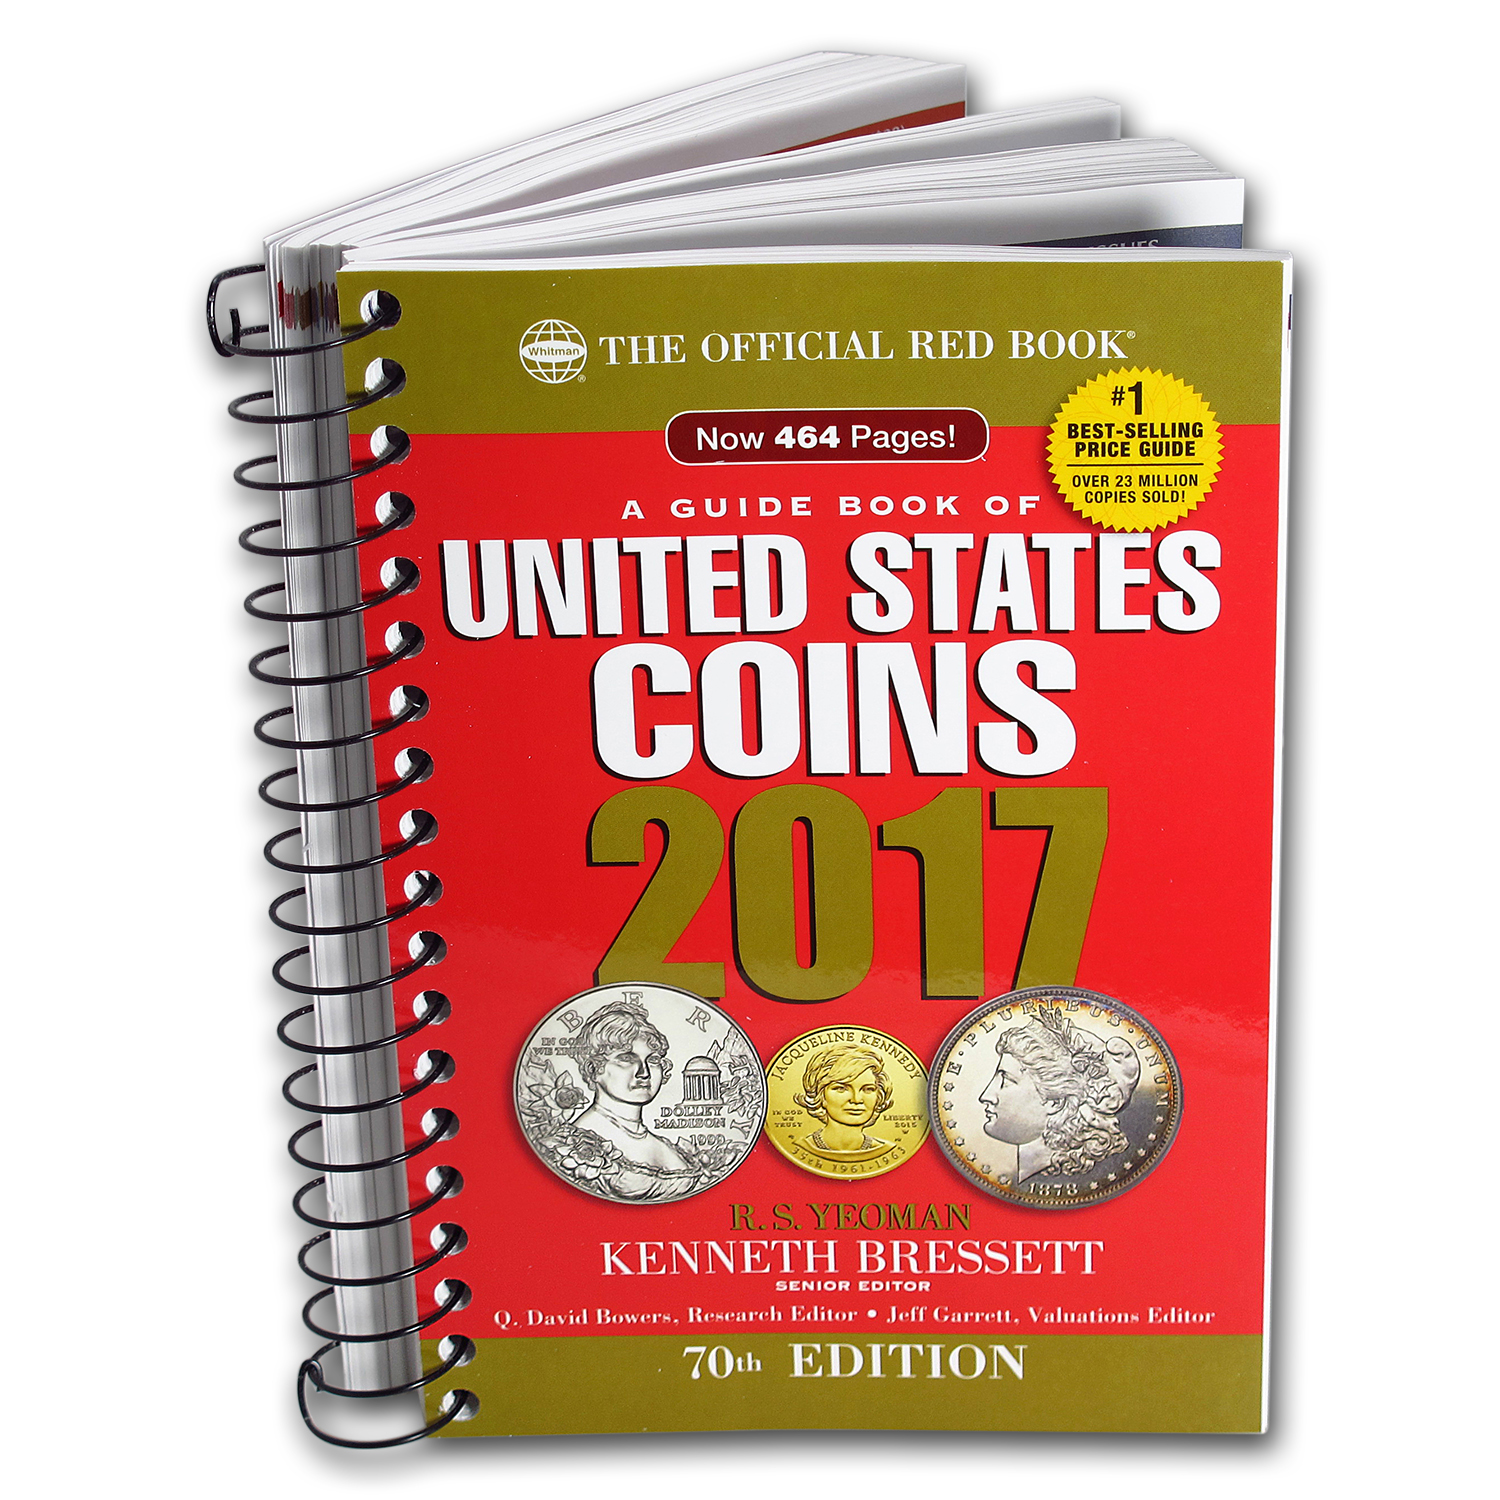 2017 Red Book of United States Coins - Bressett & Yeoman (Spiral)